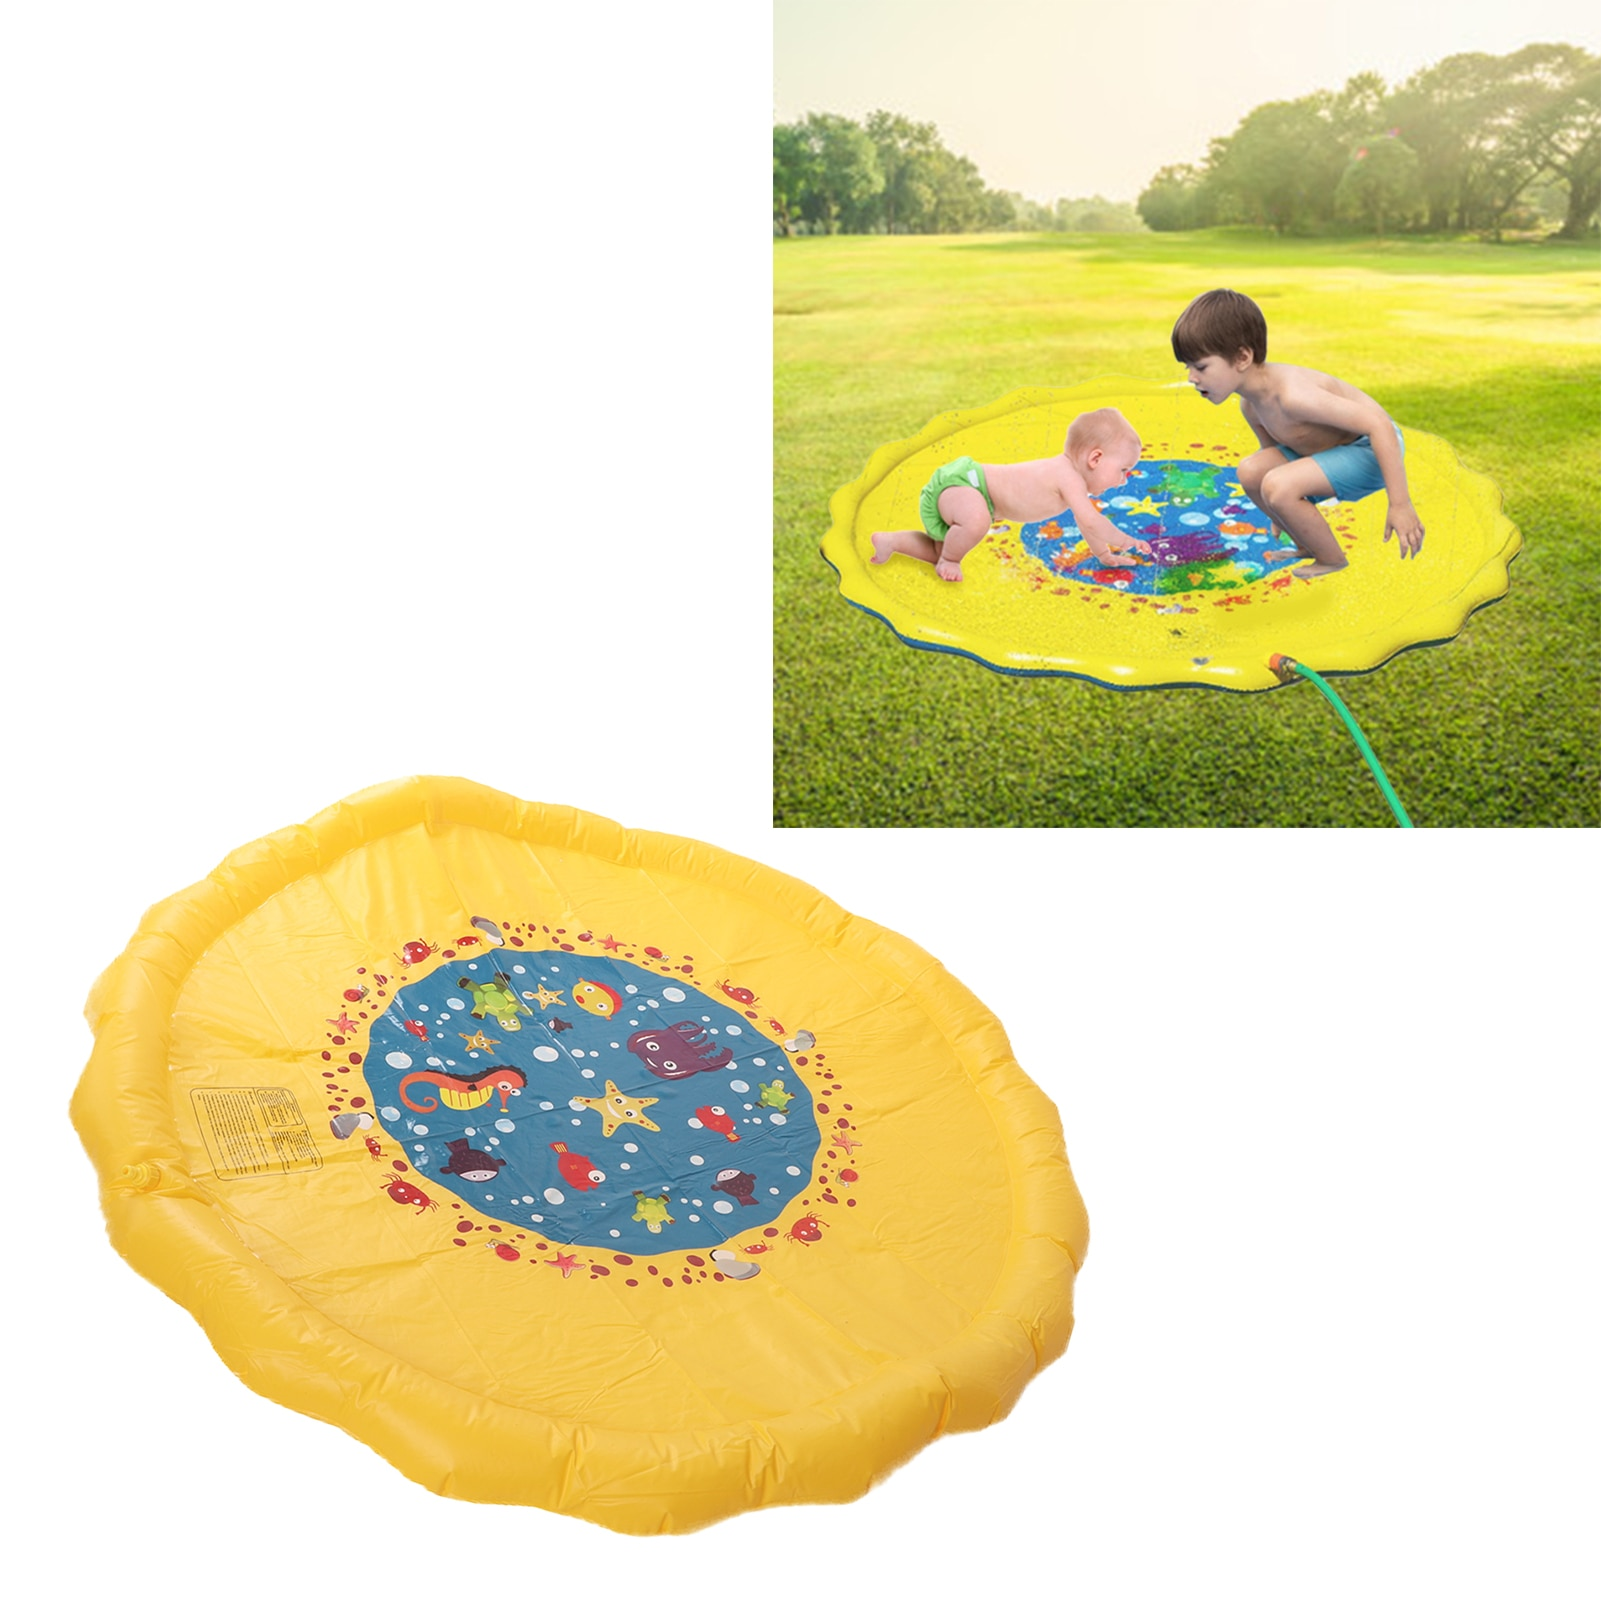 170cm Summer Inflatable Spray Water Cushion Kids Play Water Mat Lawn Games Pad Sprinkler Play Toys Outdoor Tub Kids Toys